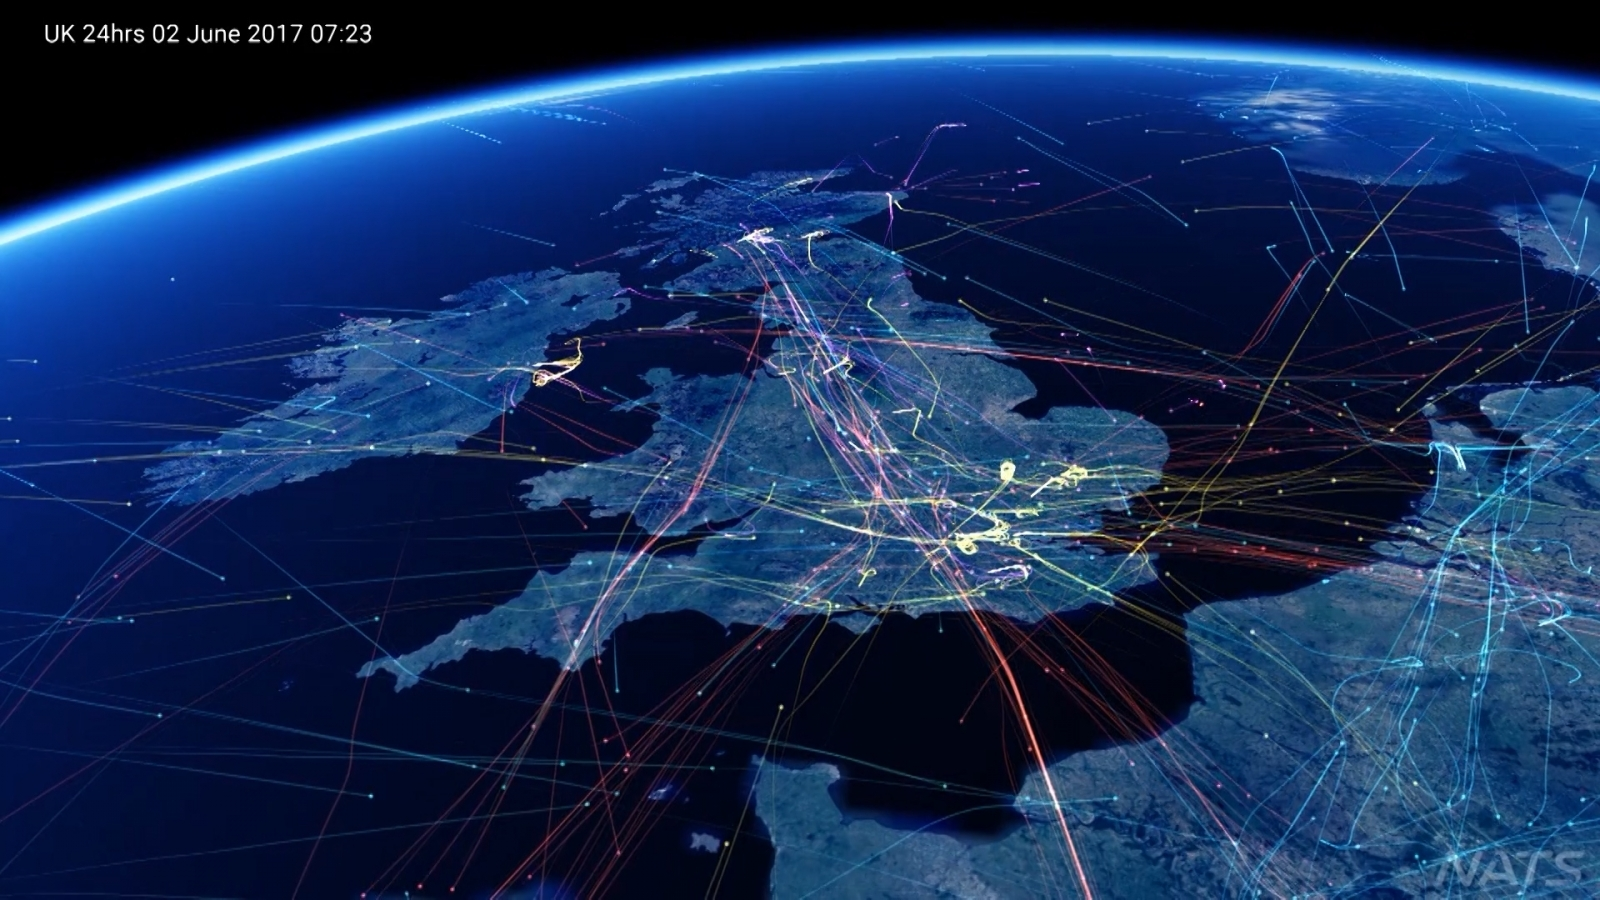 Incredible air traffic video reveals UK's busy skies